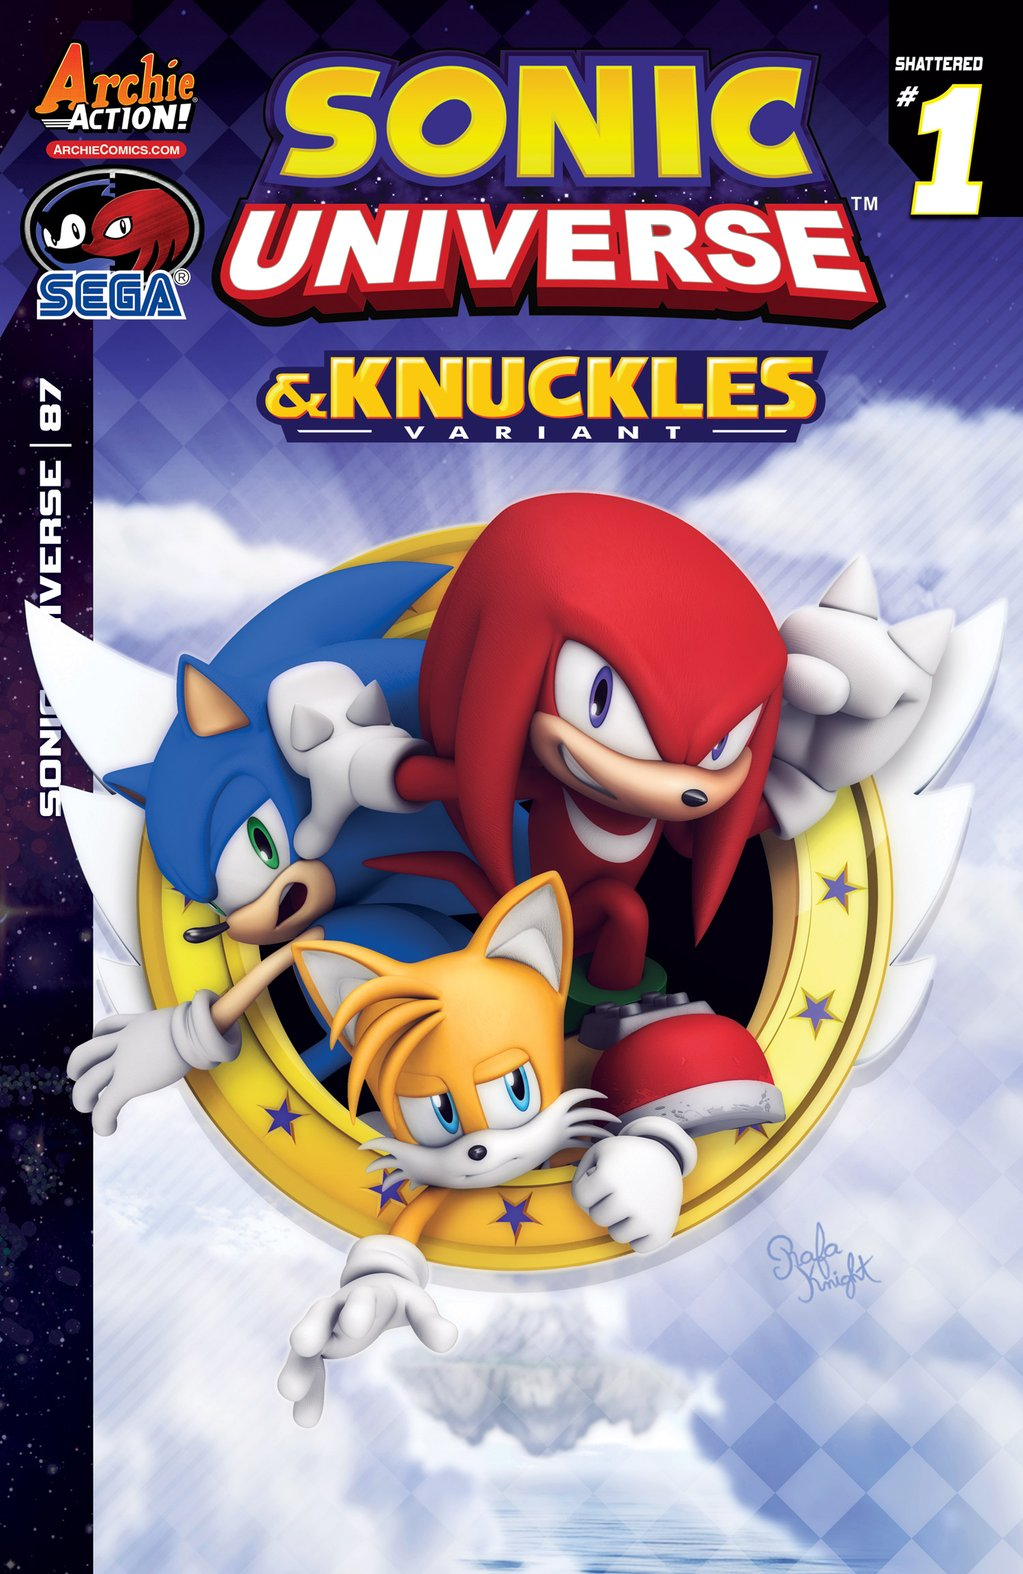 & Knuckles